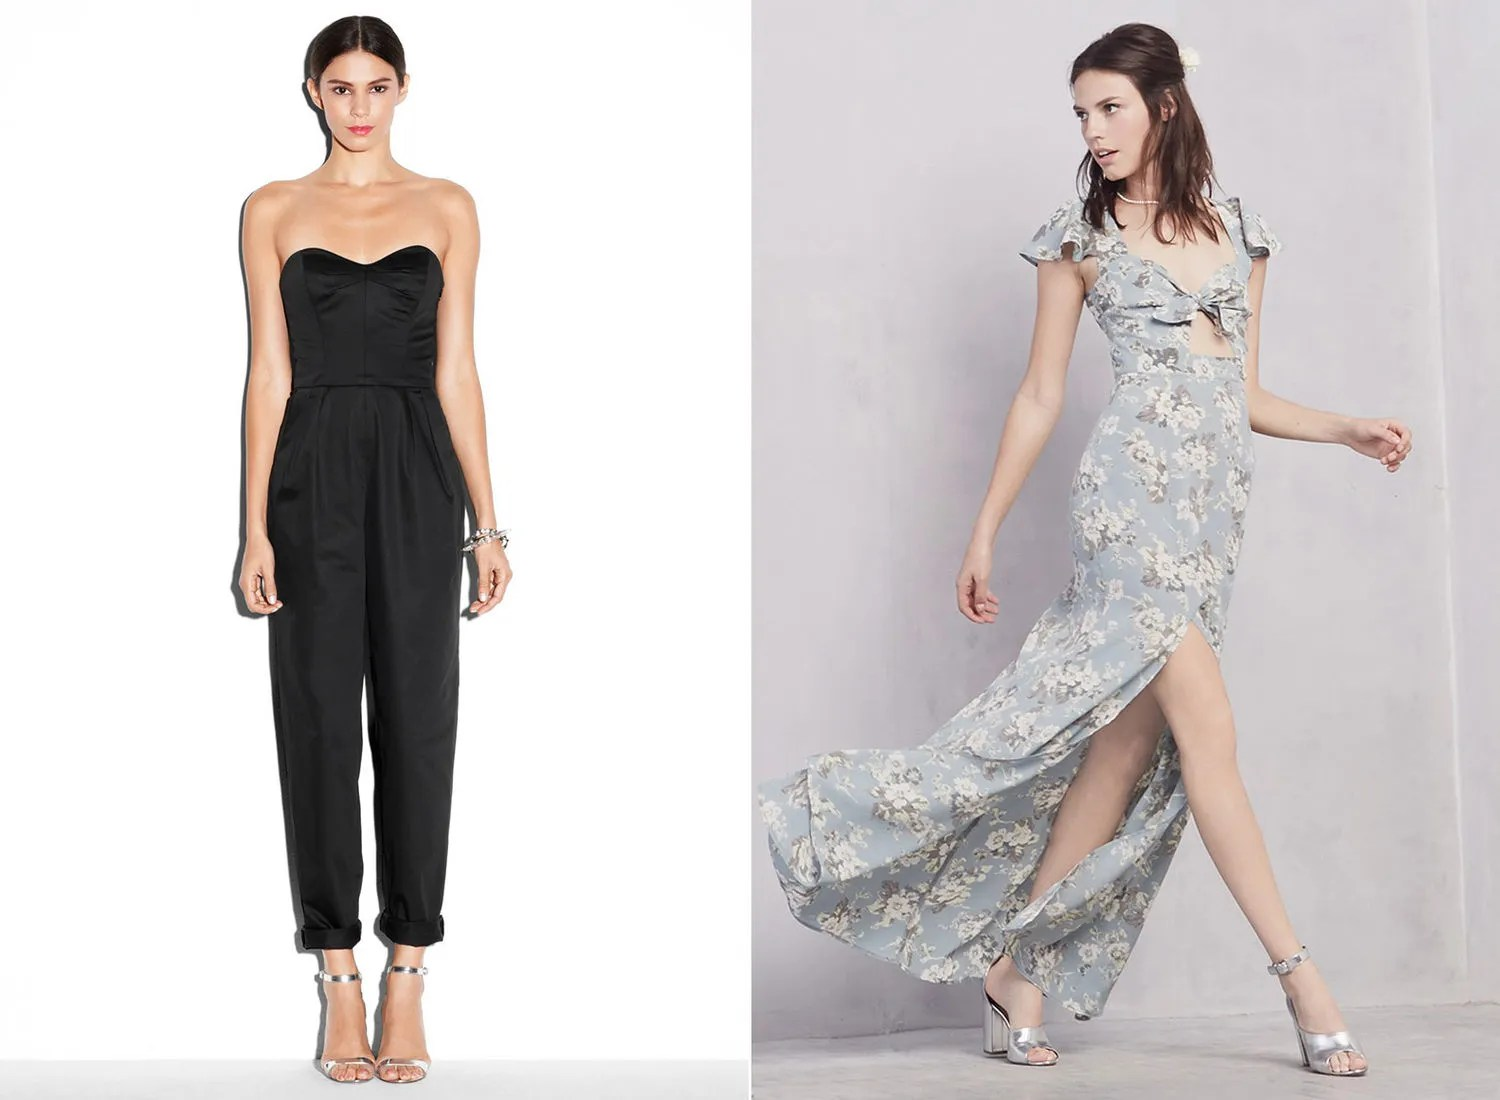 Summer Wedding Dress Code: What To Wear To A Formal